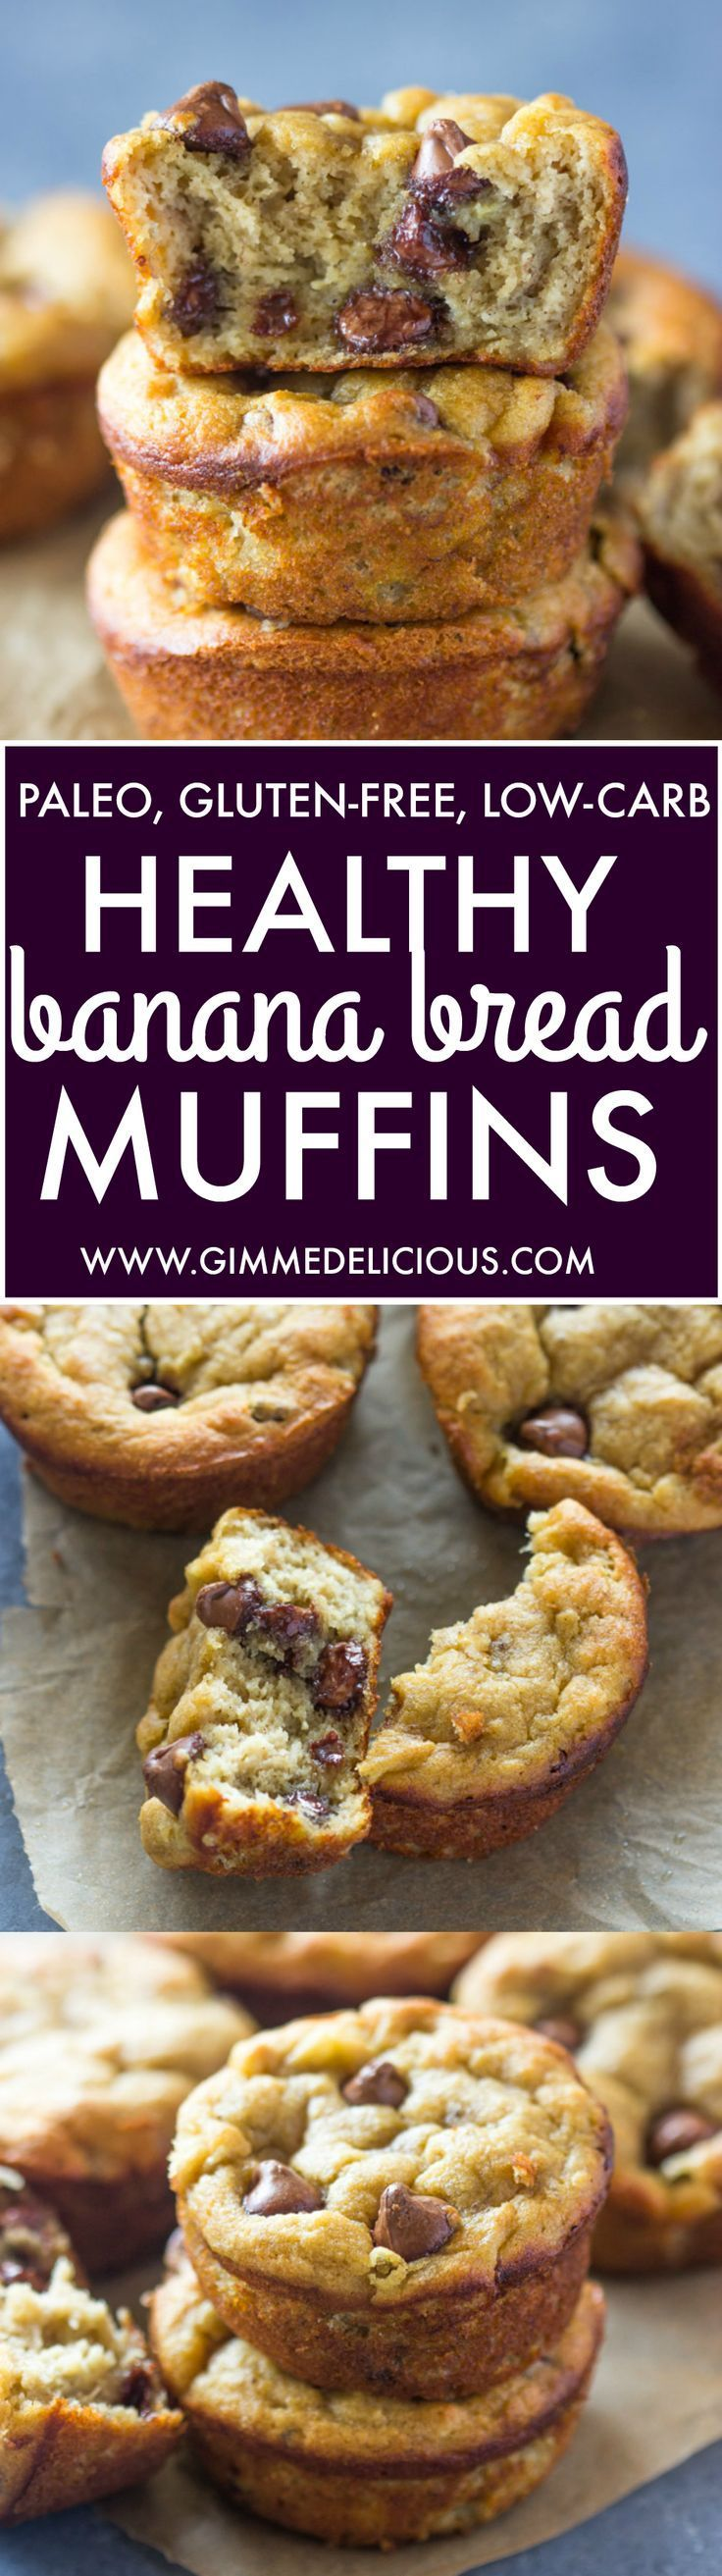 Paleo Banana Bread Muffins Gluten free Low Carb